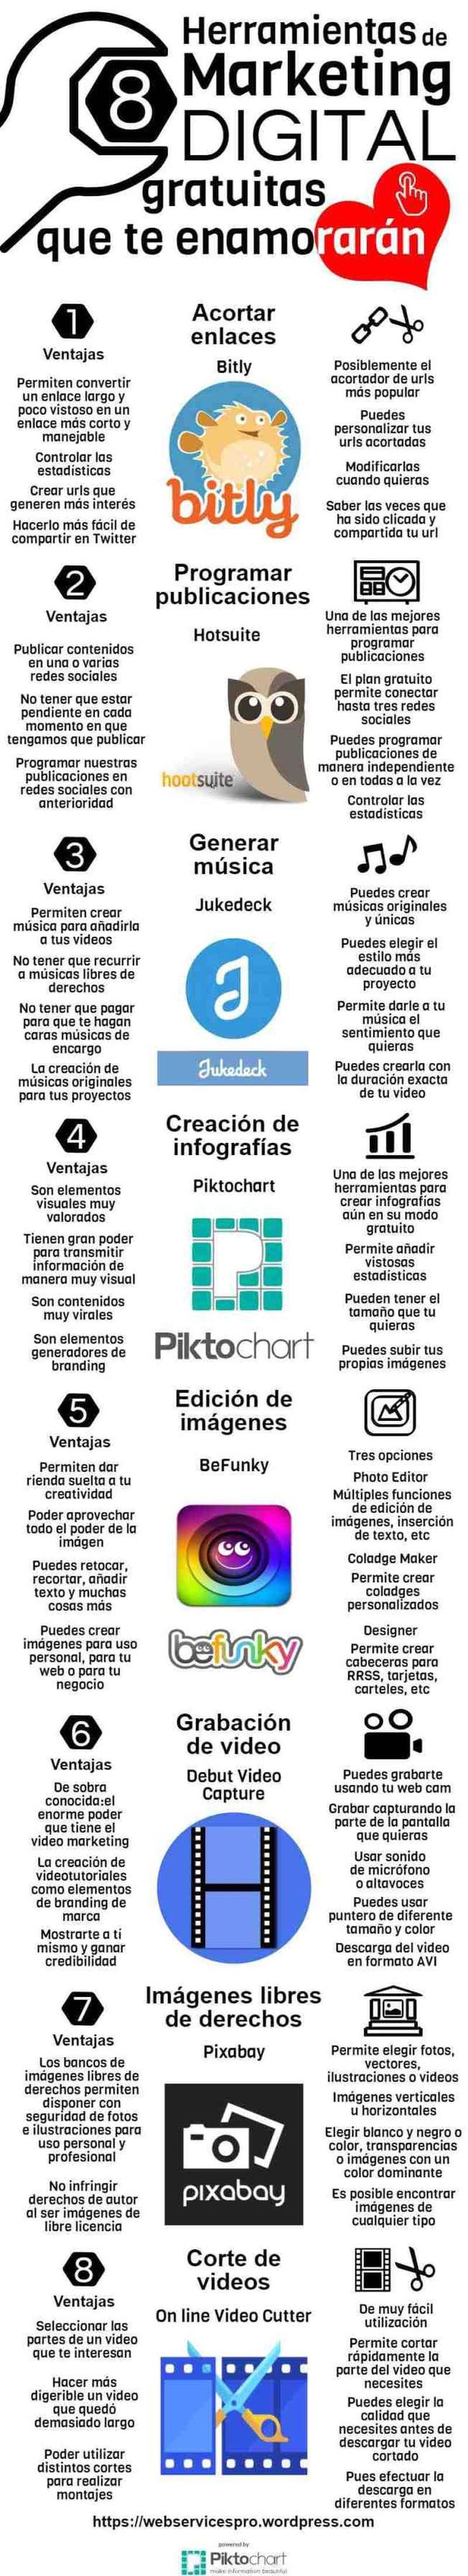 Herramientas de Marketing Digital, las 8 imprescindibles